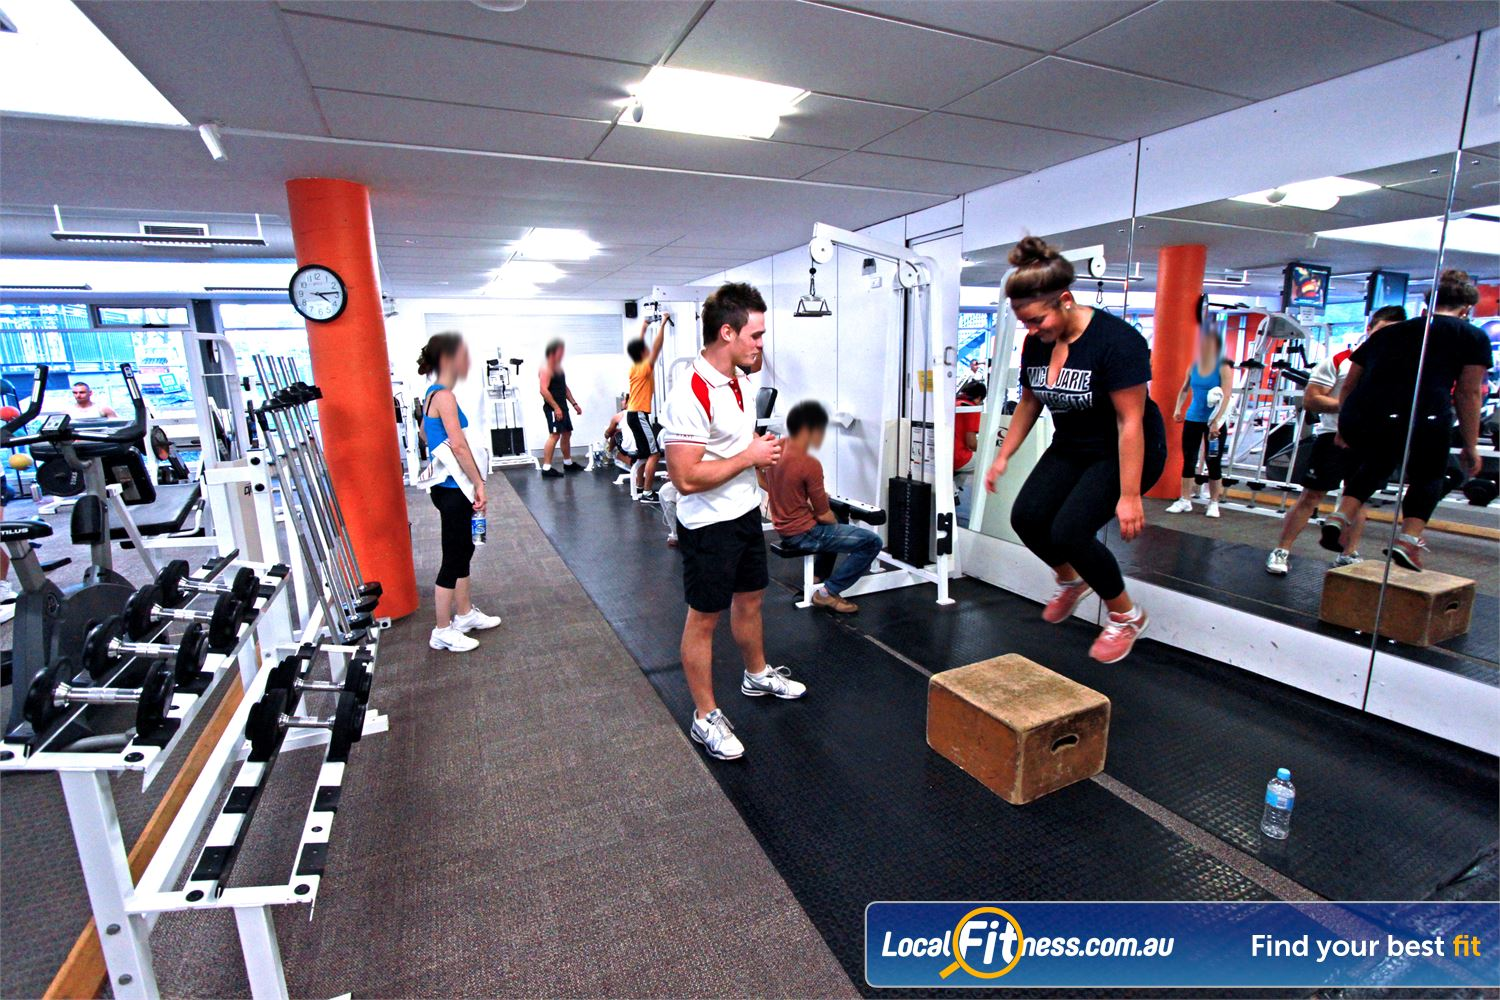 Macquarie University Sport & Aquatic Centre Macquarie Park An extensive range of equipment, perfect for strength sport athletes.